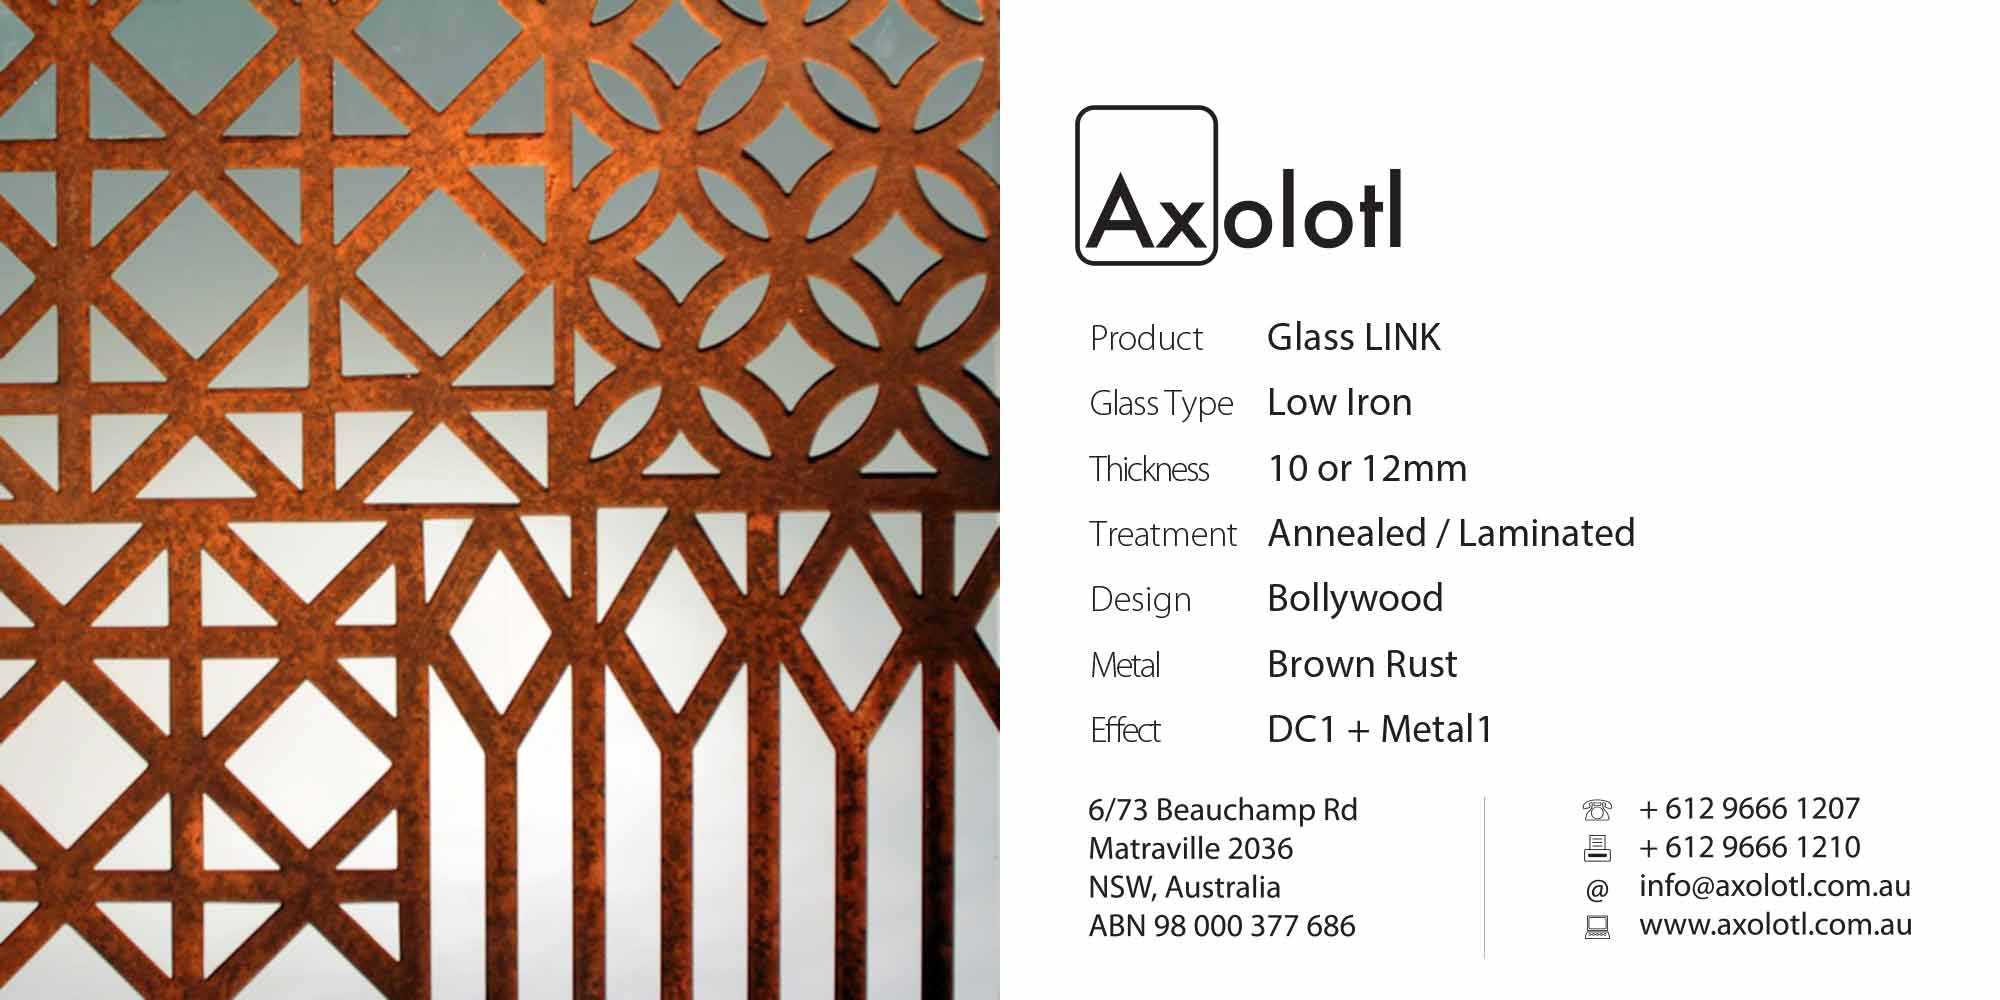 Axolotl_GlassLINK_Bollywood_BrownRust.jpg